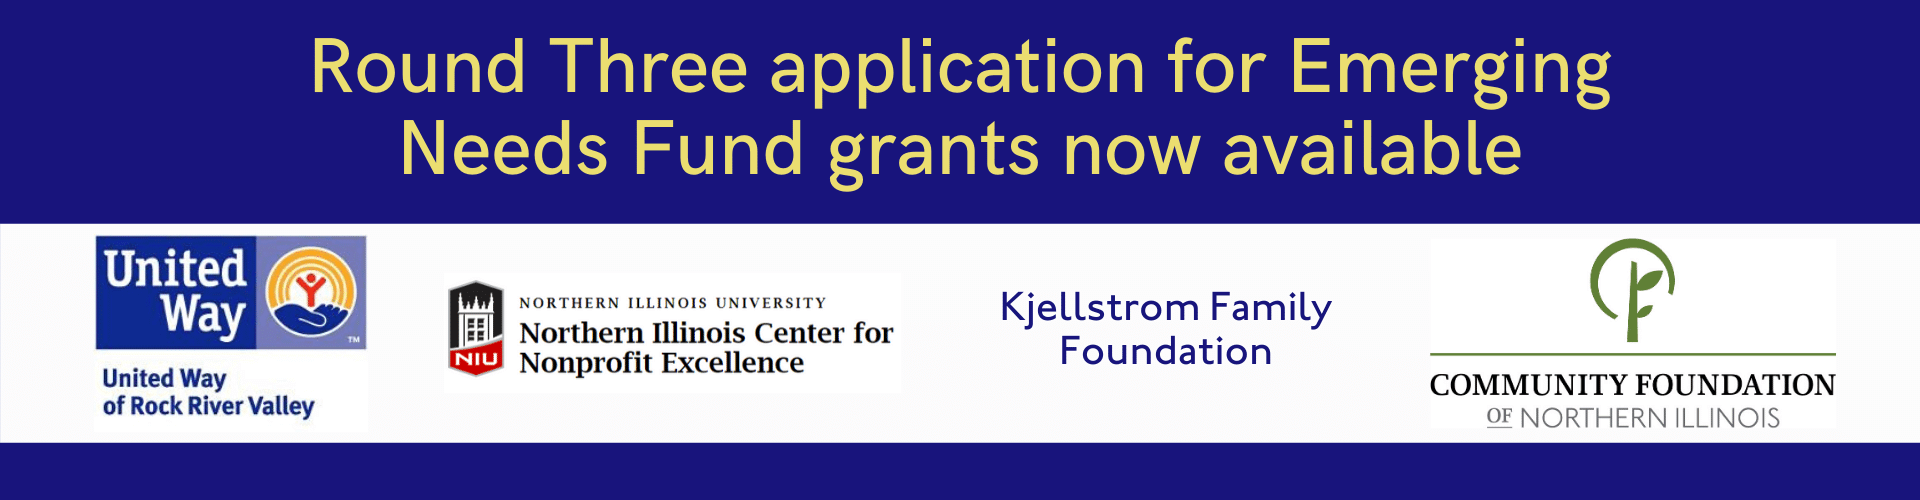 Round Three Application for Emerging Needs Fund Grants Now Available